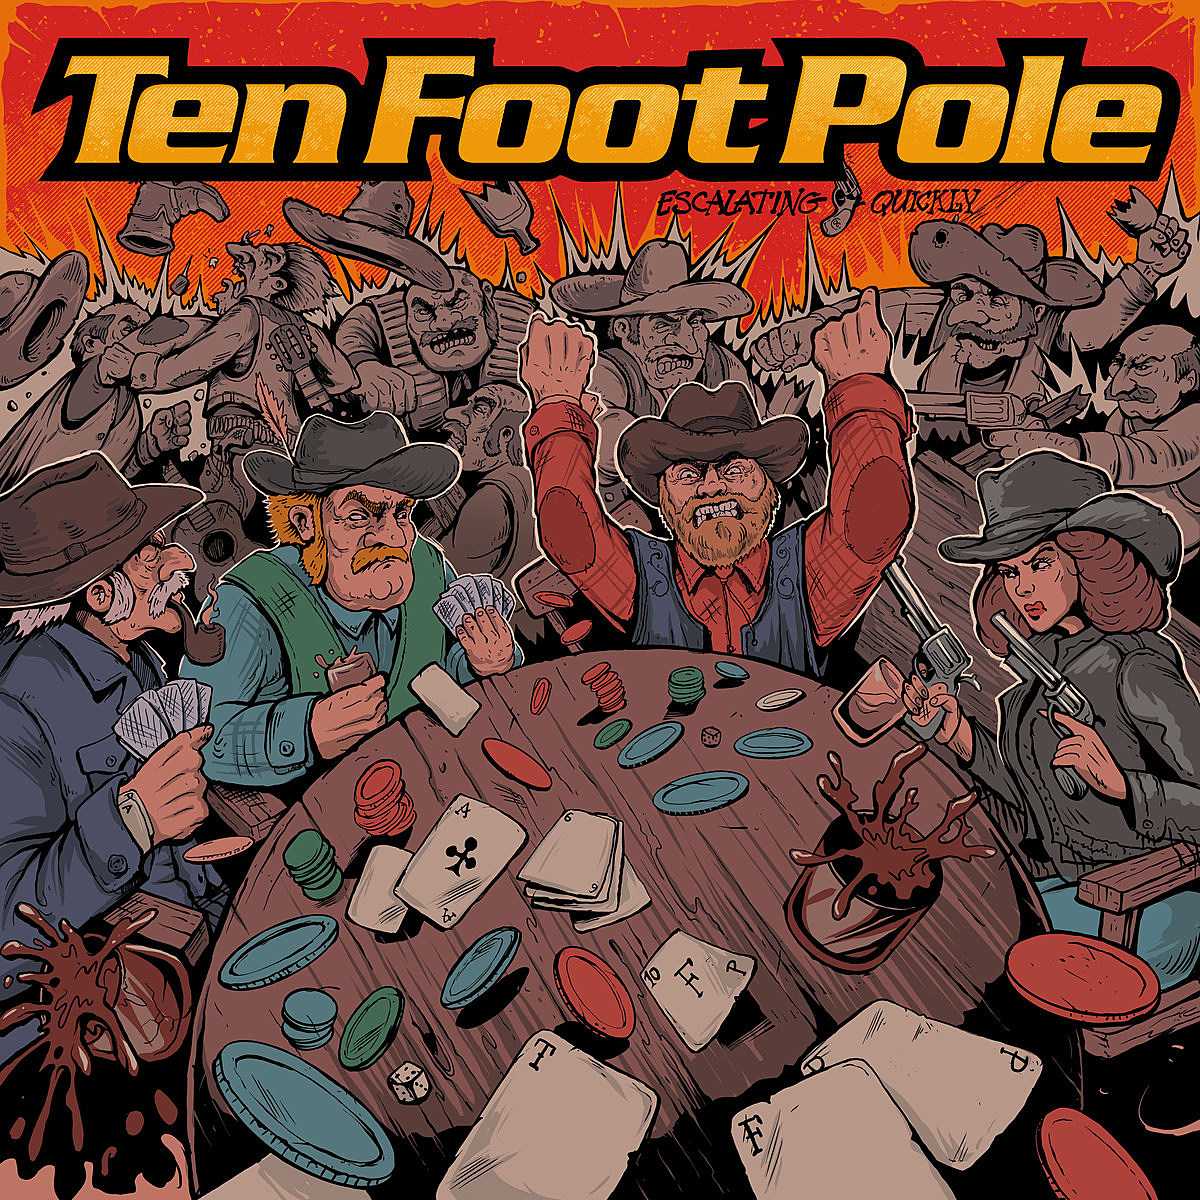 Ten Foot Pole releasing first album of new music in 15 years (stream a track)